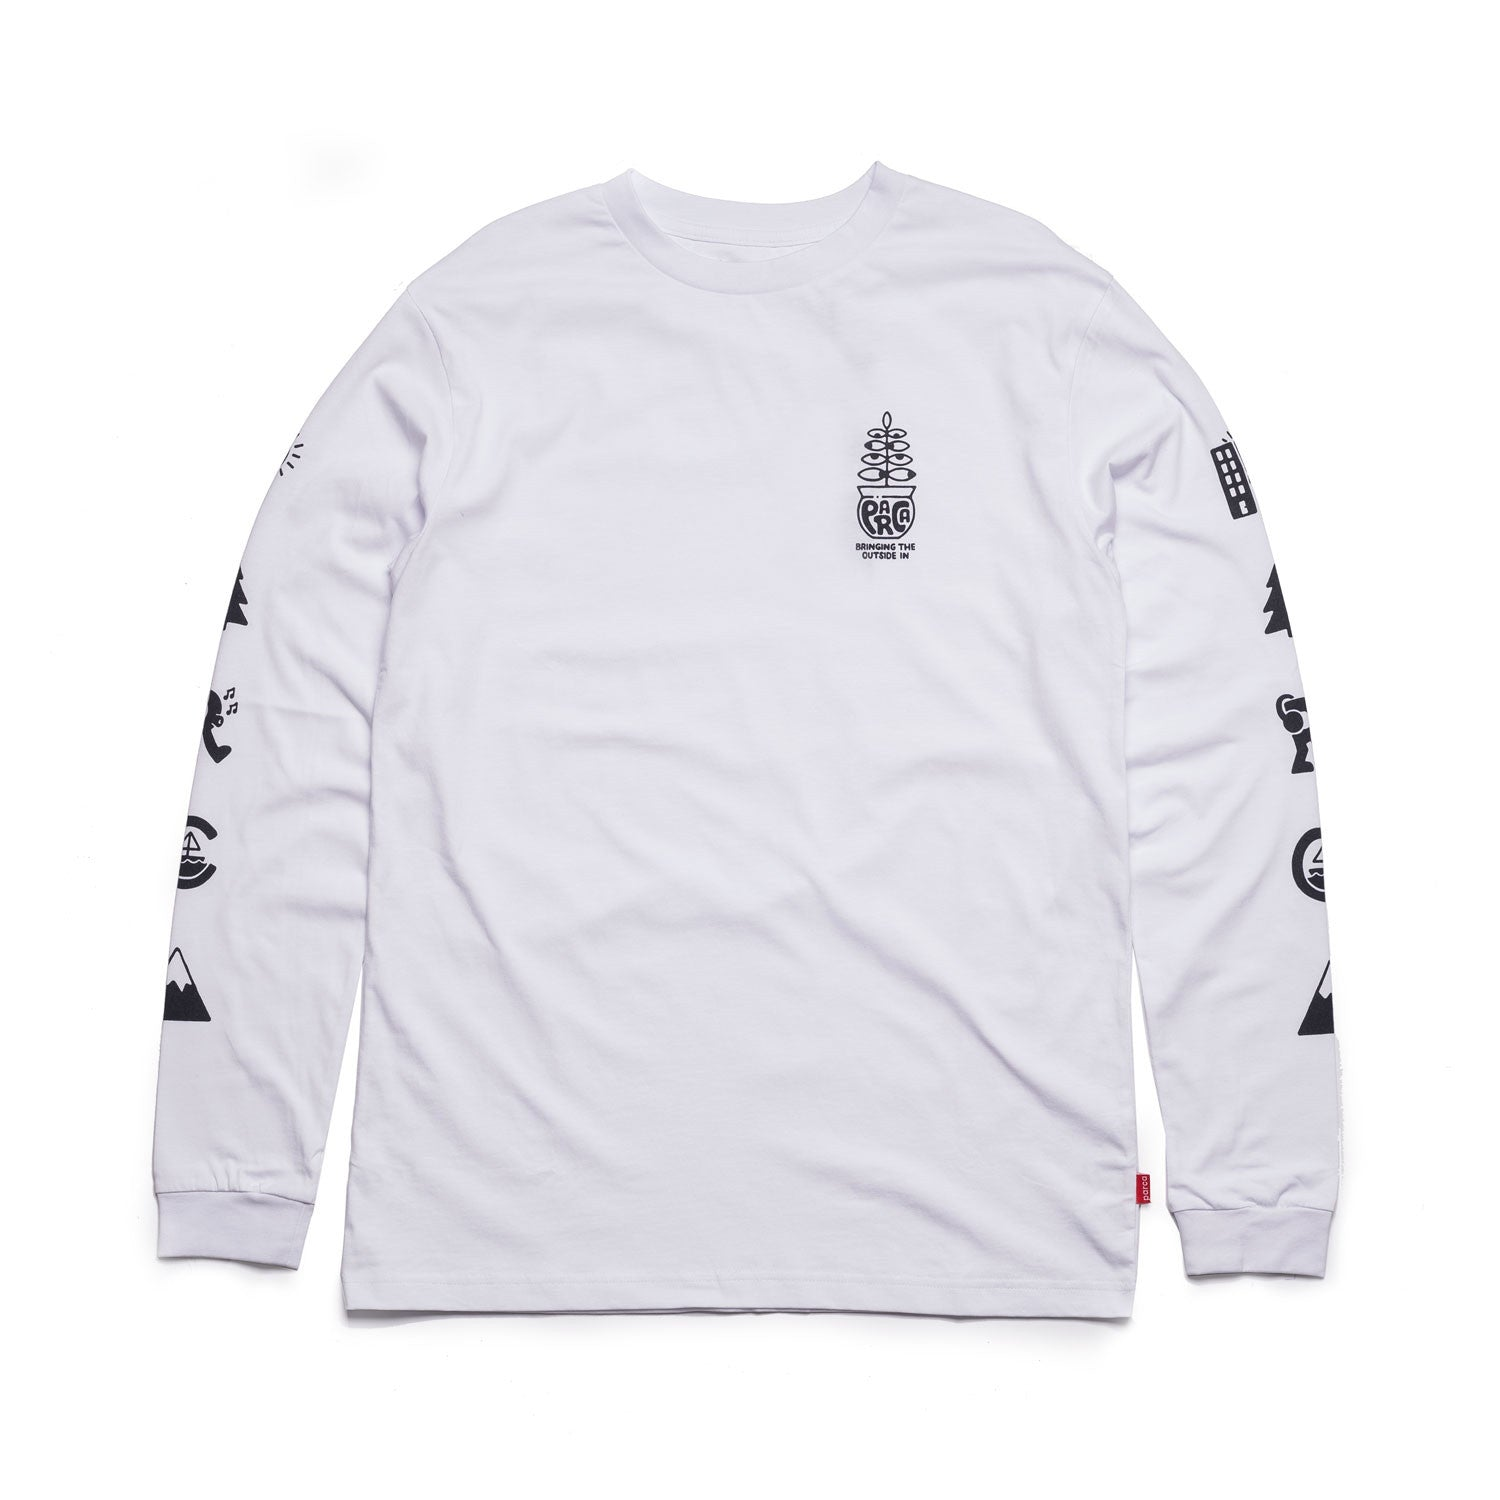 L/S Tee - Elements - White